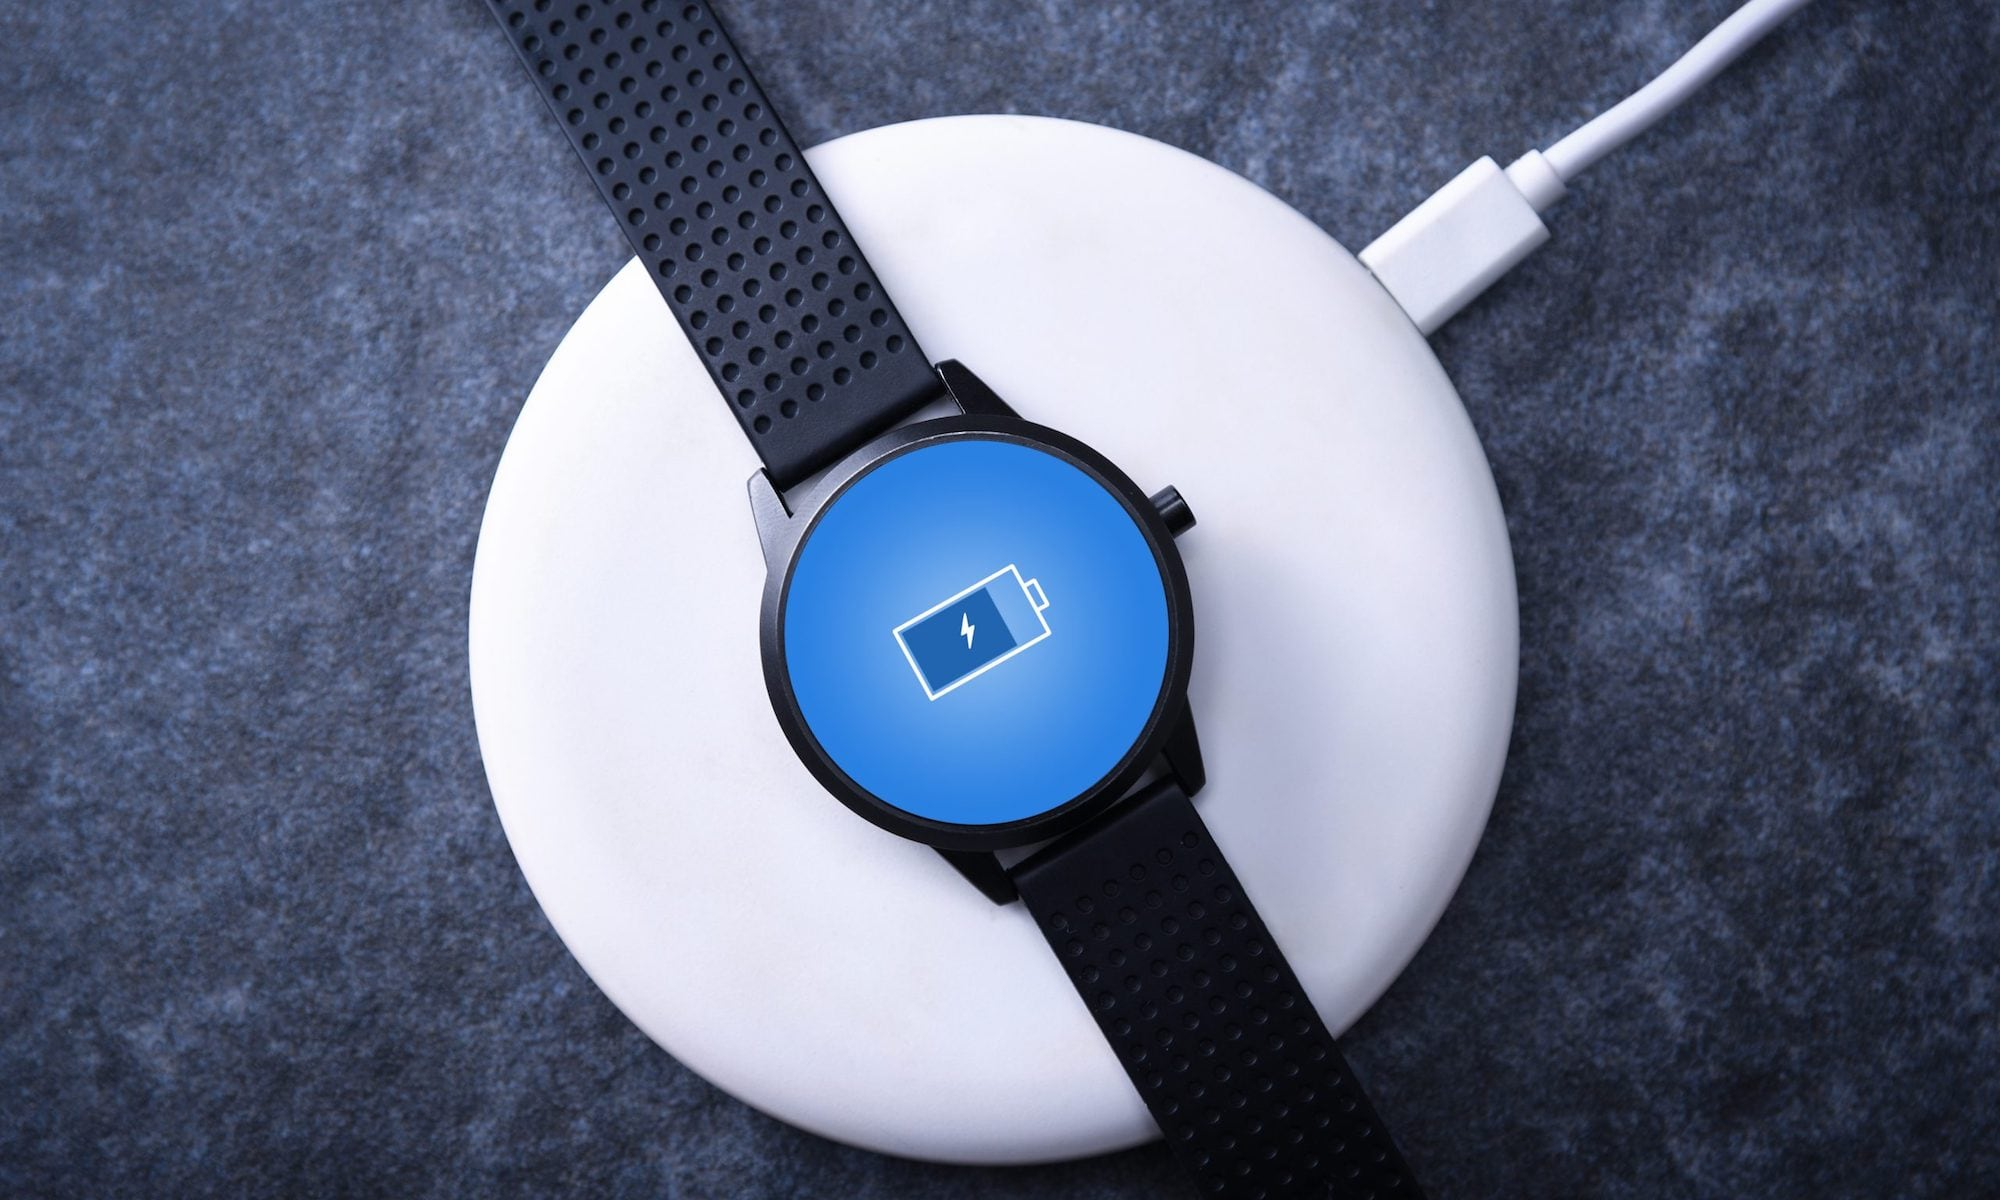 After Google and Apple, a Facebook Watch is possibly on its way